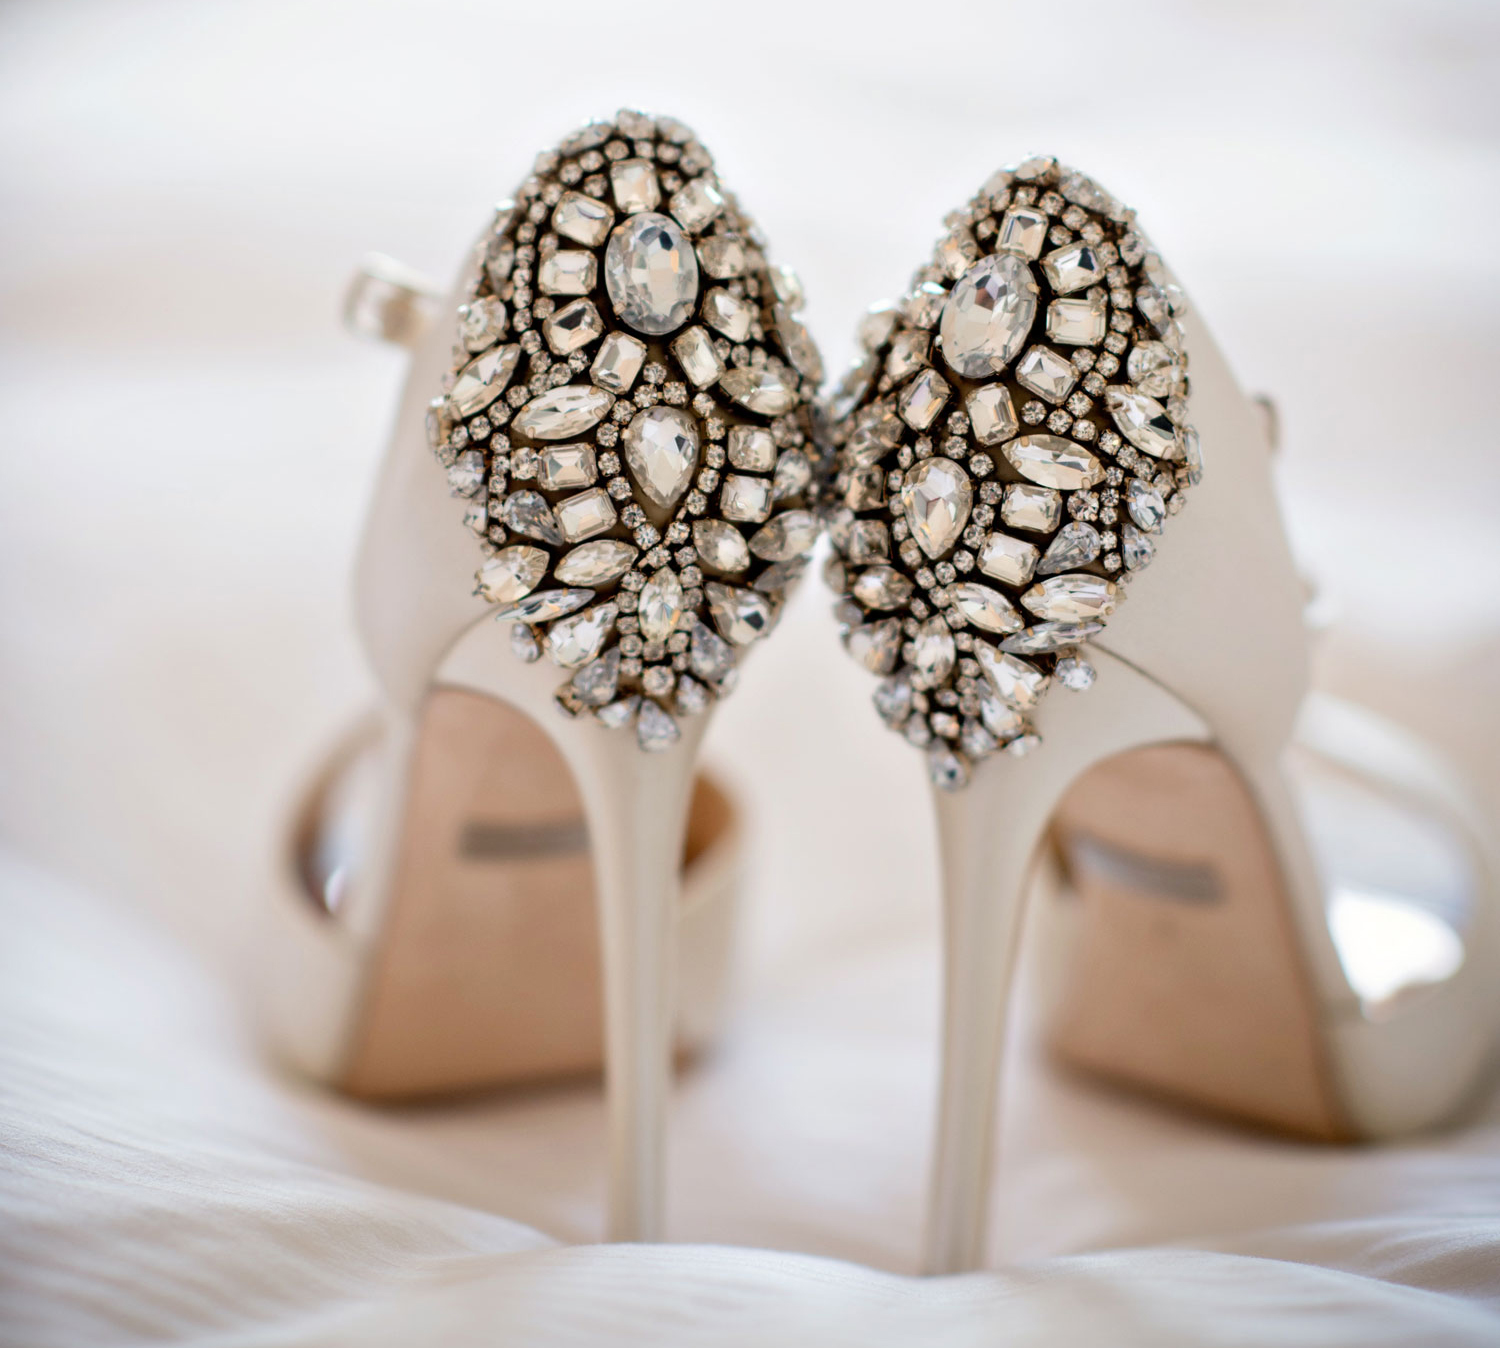 b0f10820ca0 Finding the Right Heel Height for Your Bridal Shoes - Inside Weddings